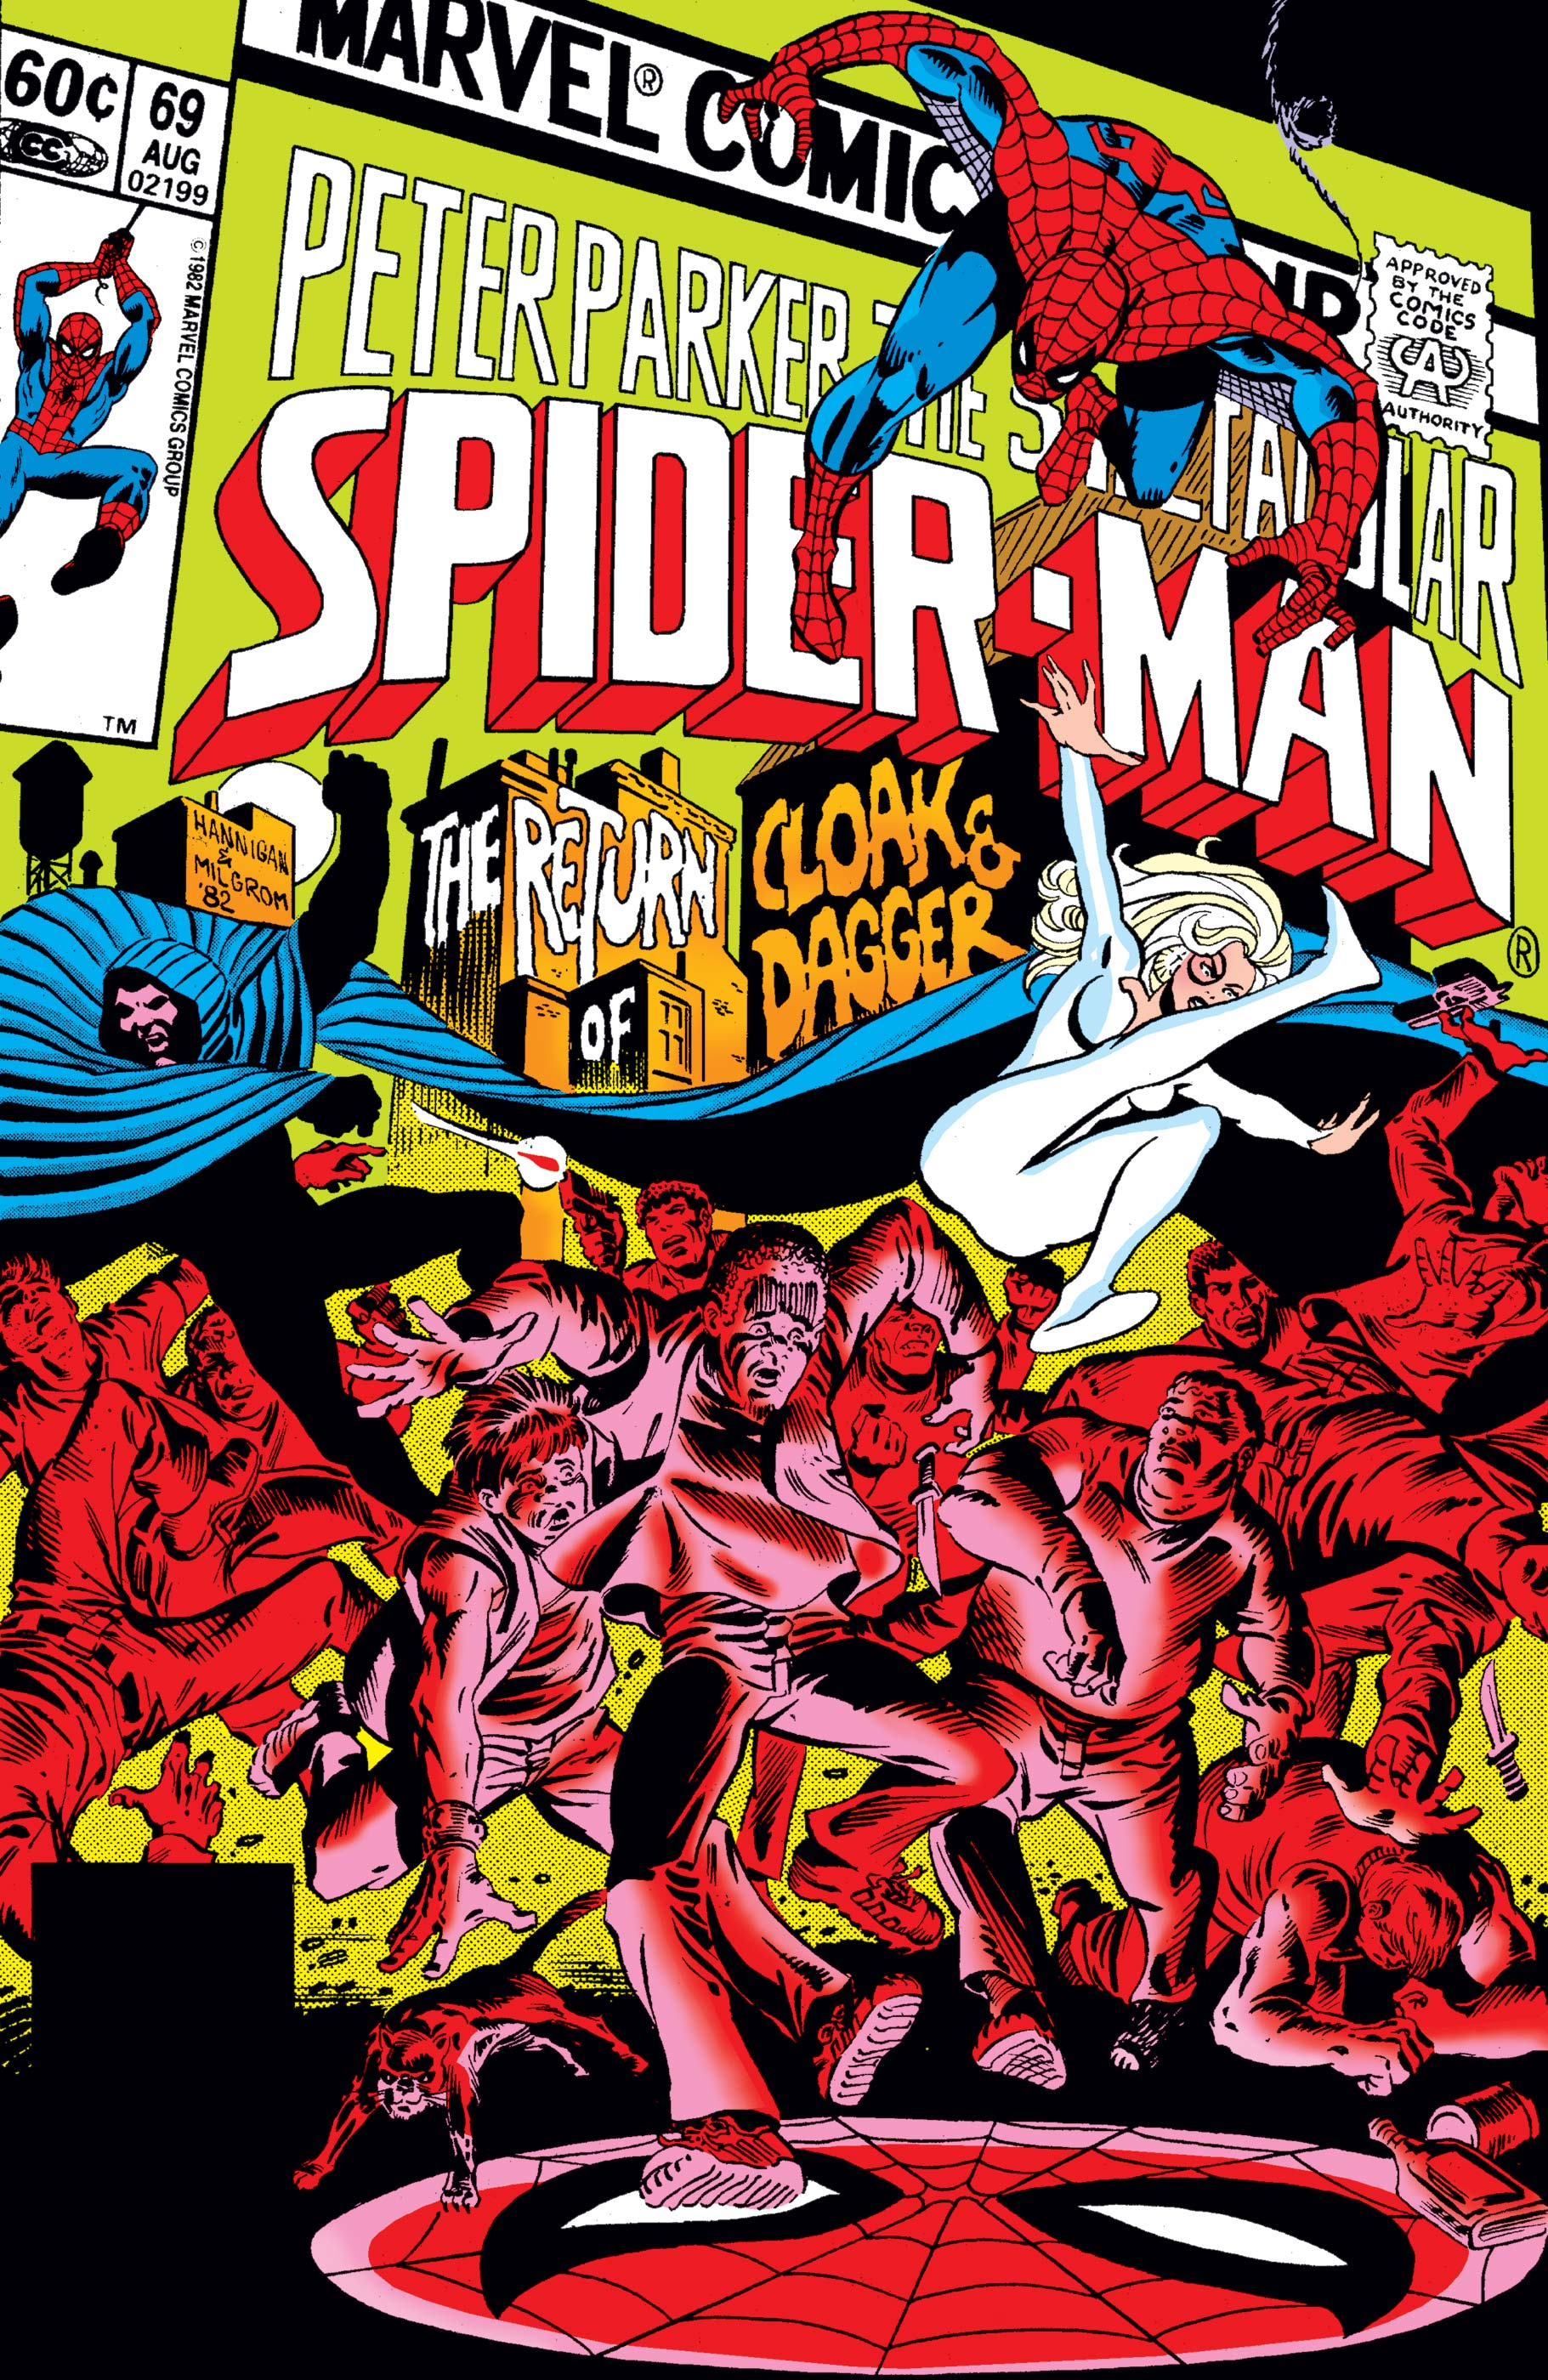 Peter Parker, the Spectacular Spider-Man (1976) #69